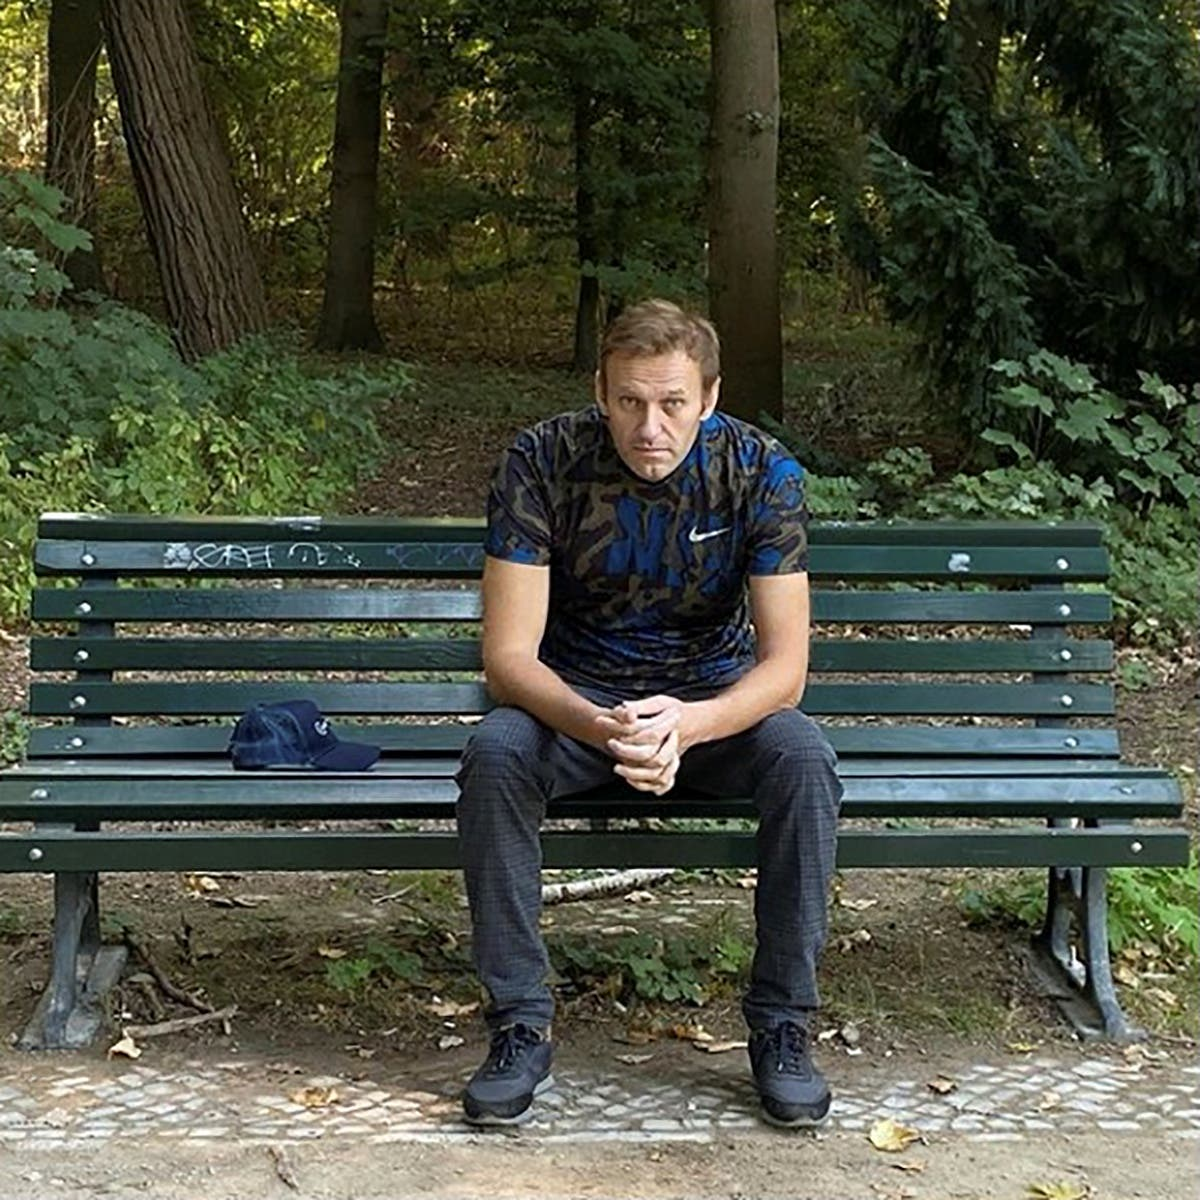 Russian opposition politician Alexei Navalny sits on a bench while posing for a picture in Berlin, Germany, in this undated image obtained from social media. (File photo: Reuters)